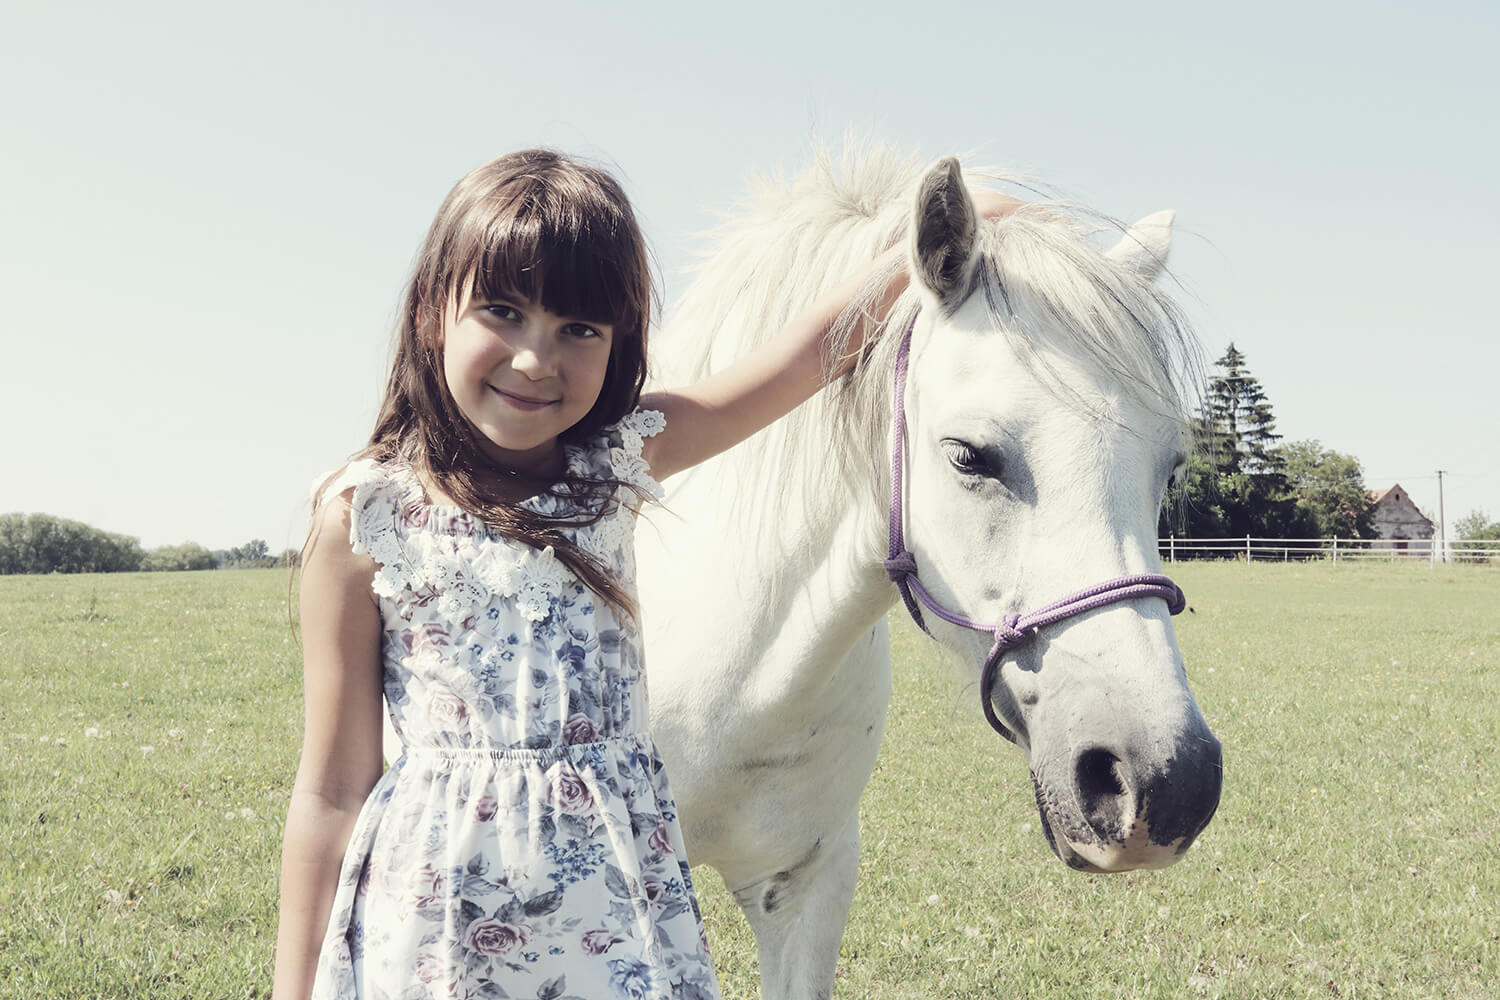 family photo of a little girl stroking a pony in nature